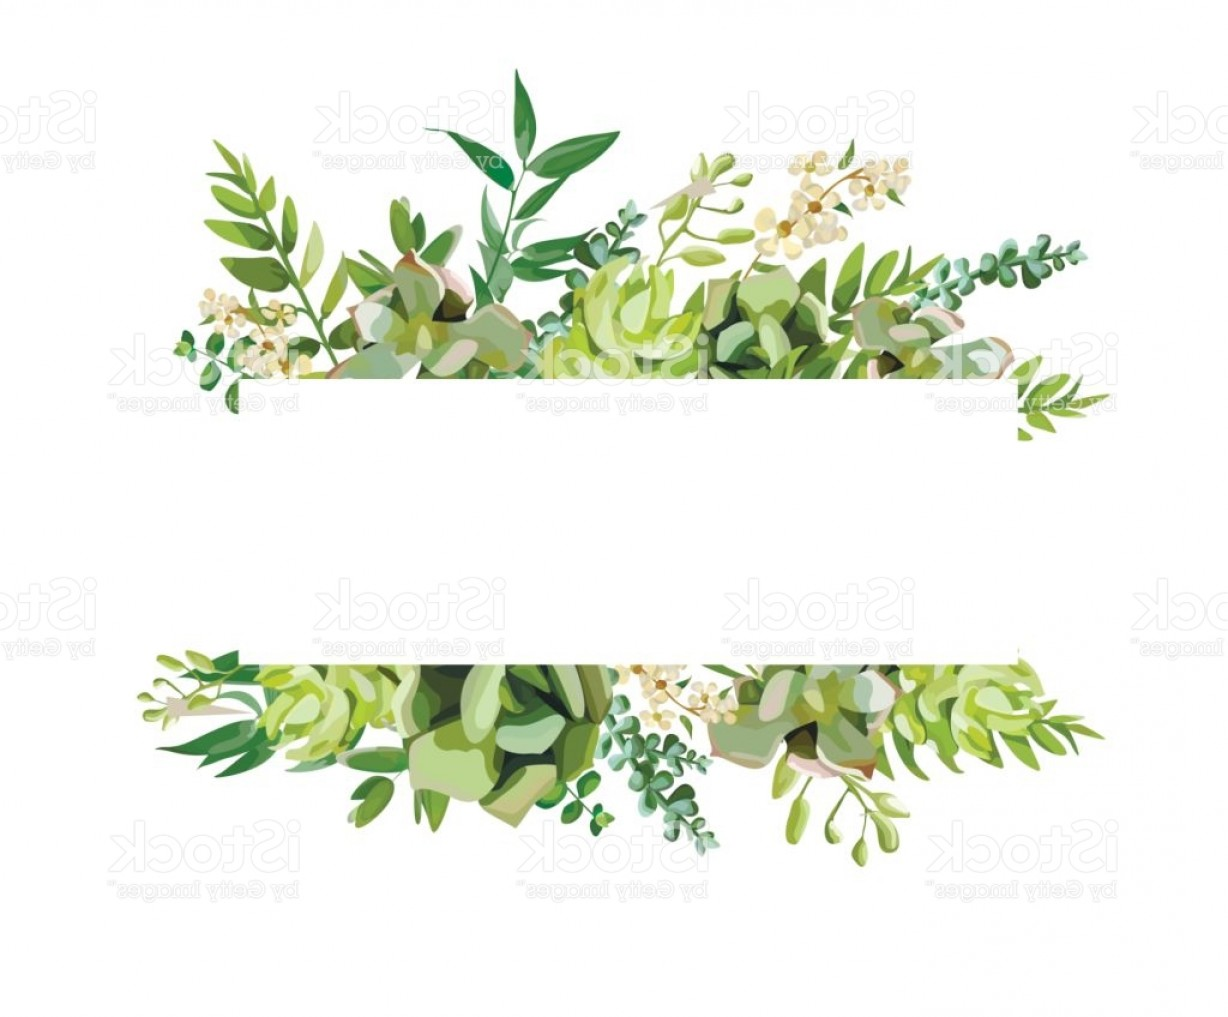 Cactus And Flower Vector: Vector Floral Design Horizontal Card Design Soft Succulent Cactus Flower Garden Gm